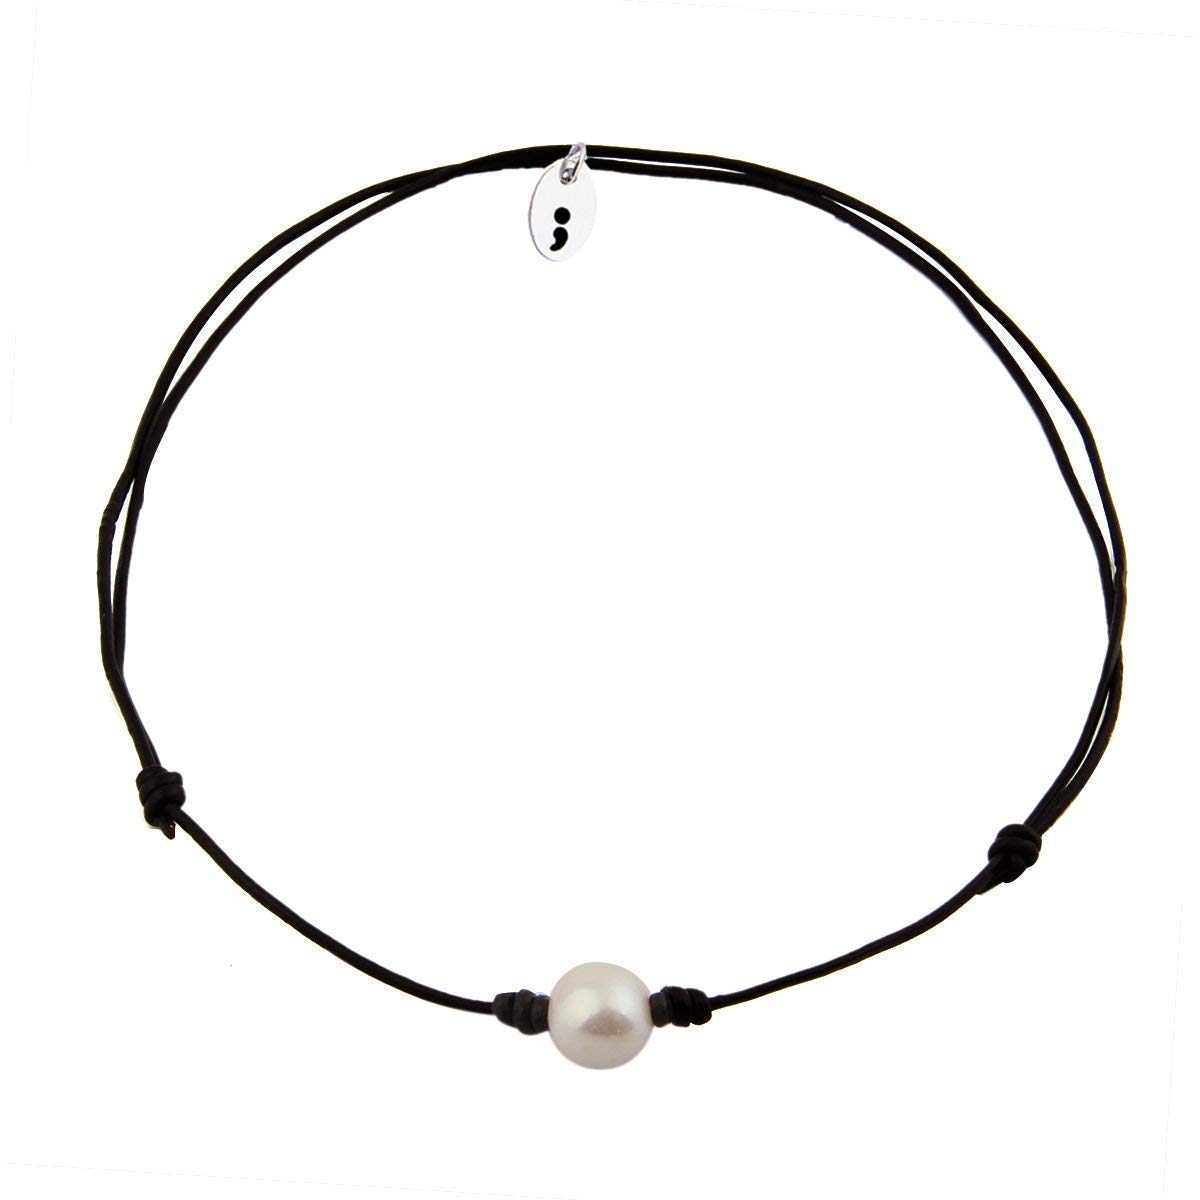 KUIYAI Pearl Choker Necklace and Bracelet with Leather Cord